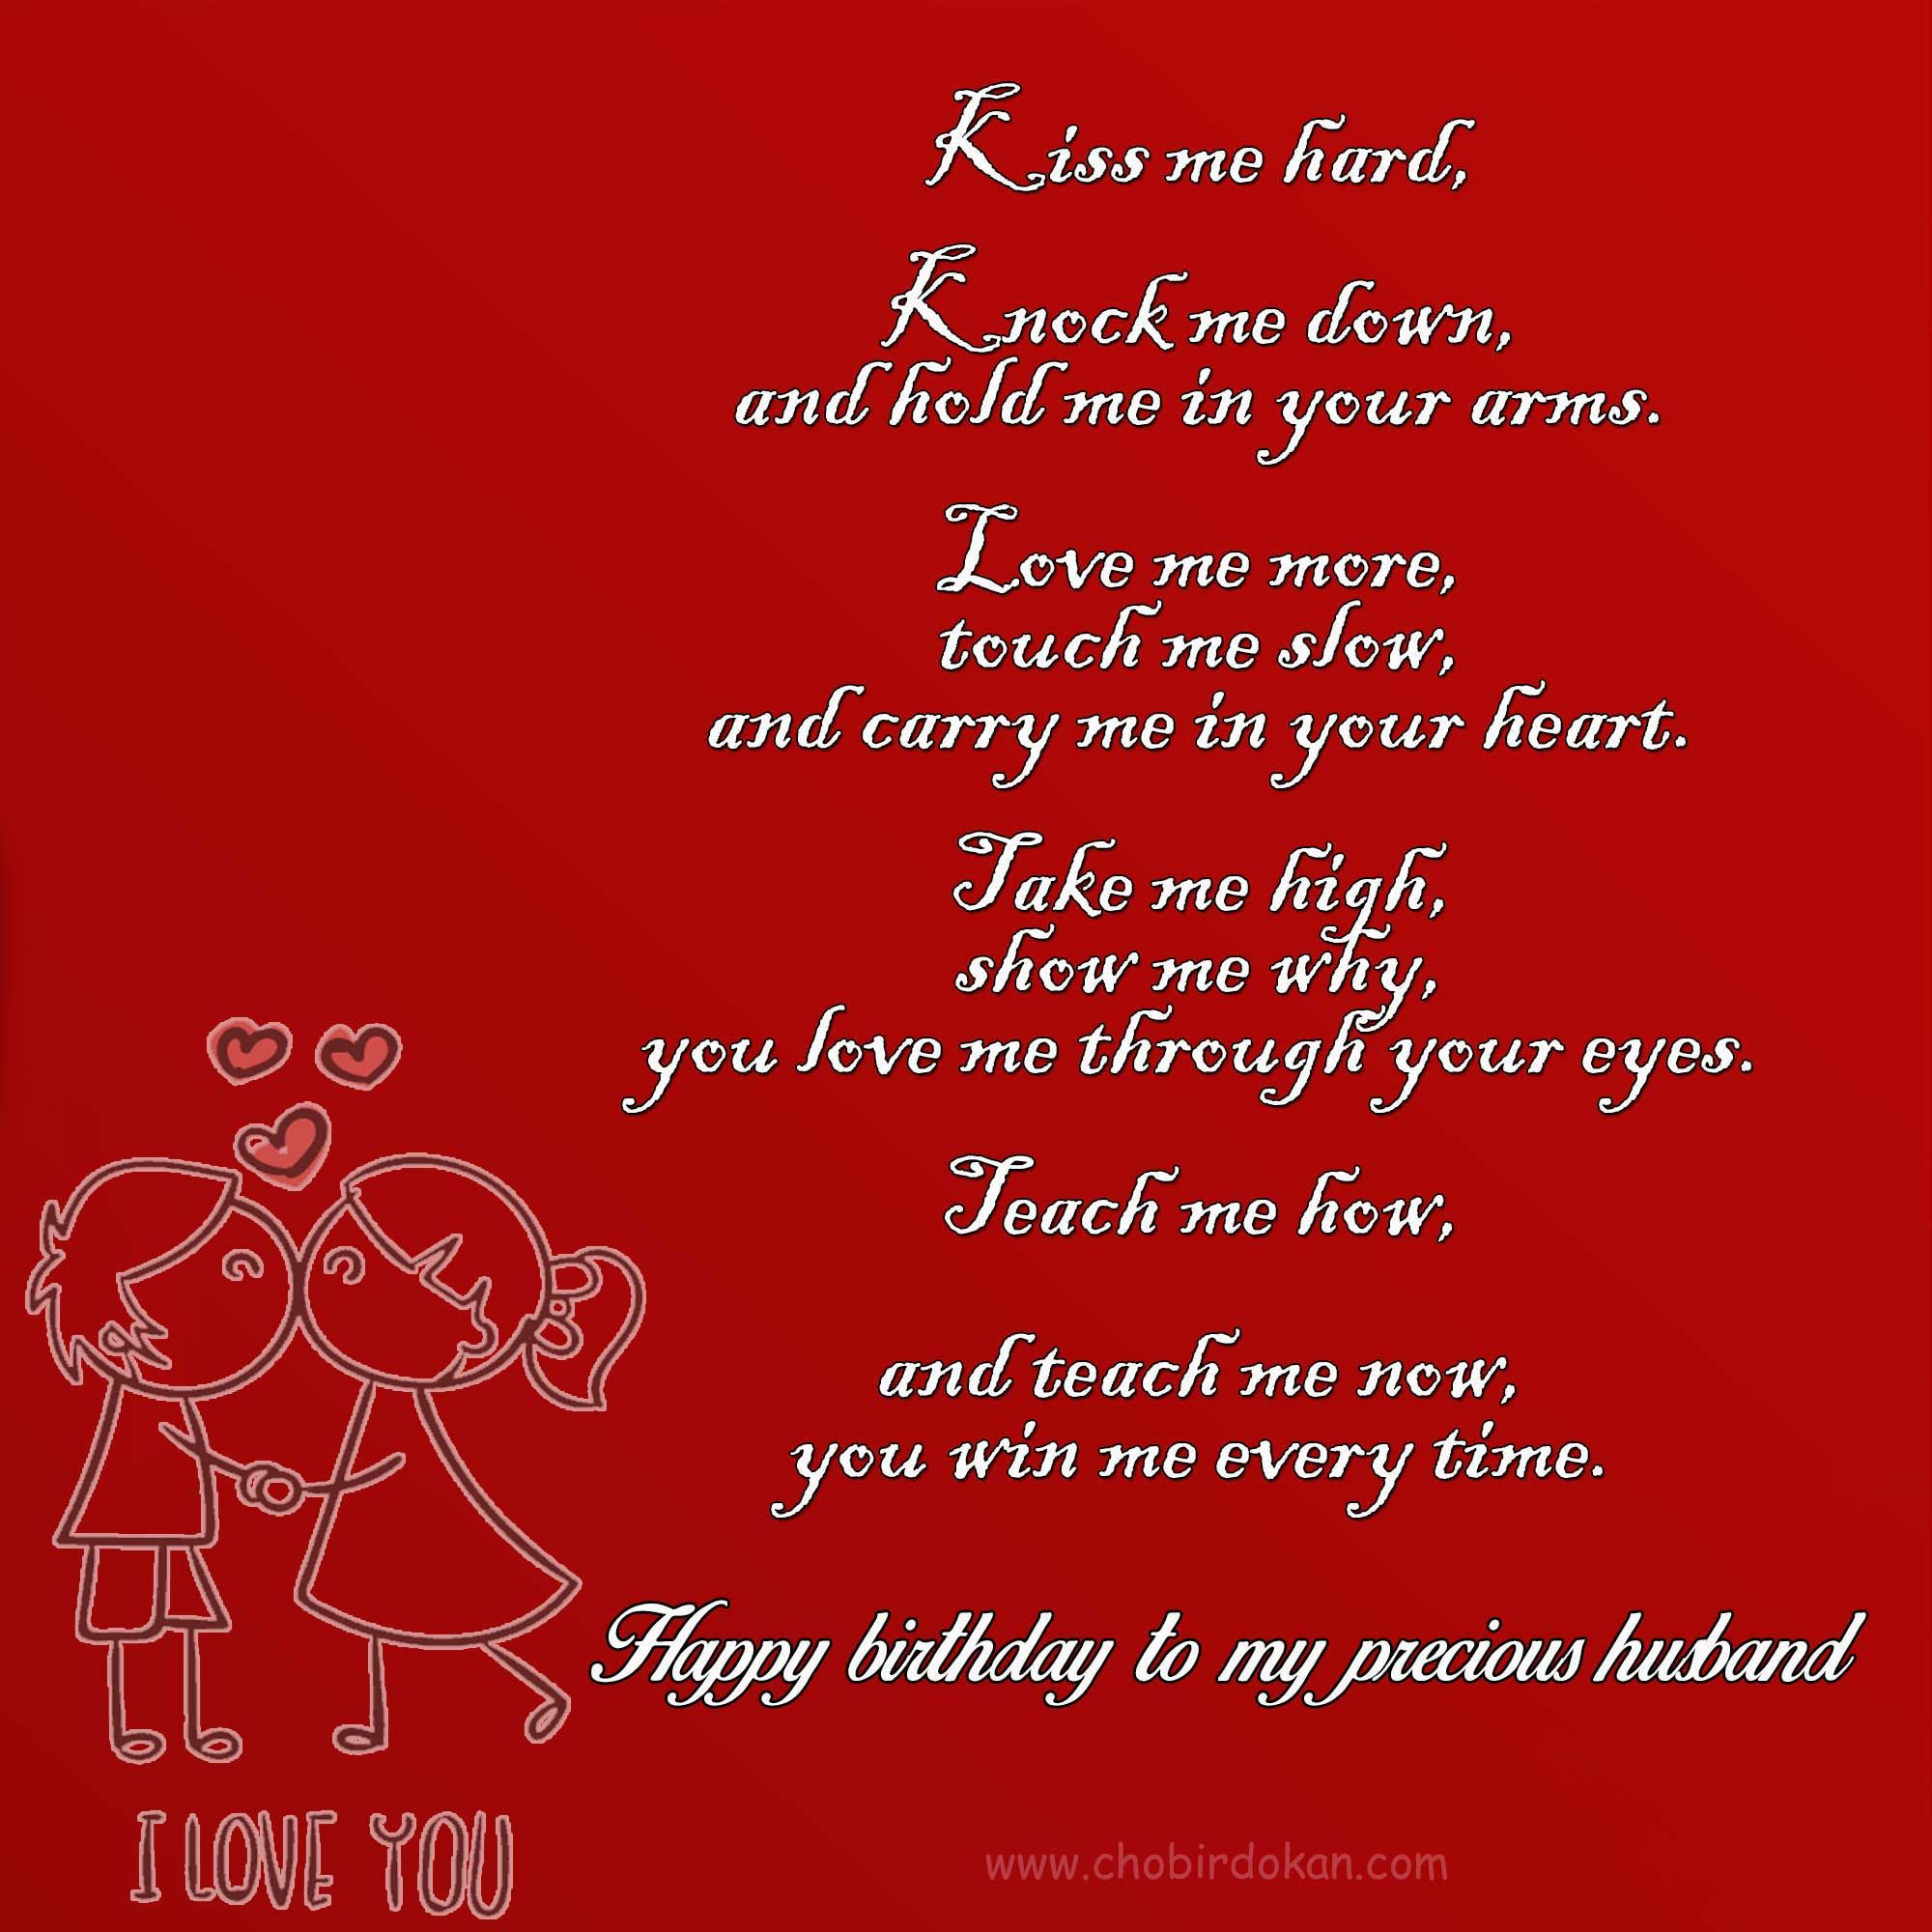 Happy Birthday Love Quotes For Her Happy Birthday Poems For Him  Birthday Poems For Her And Him